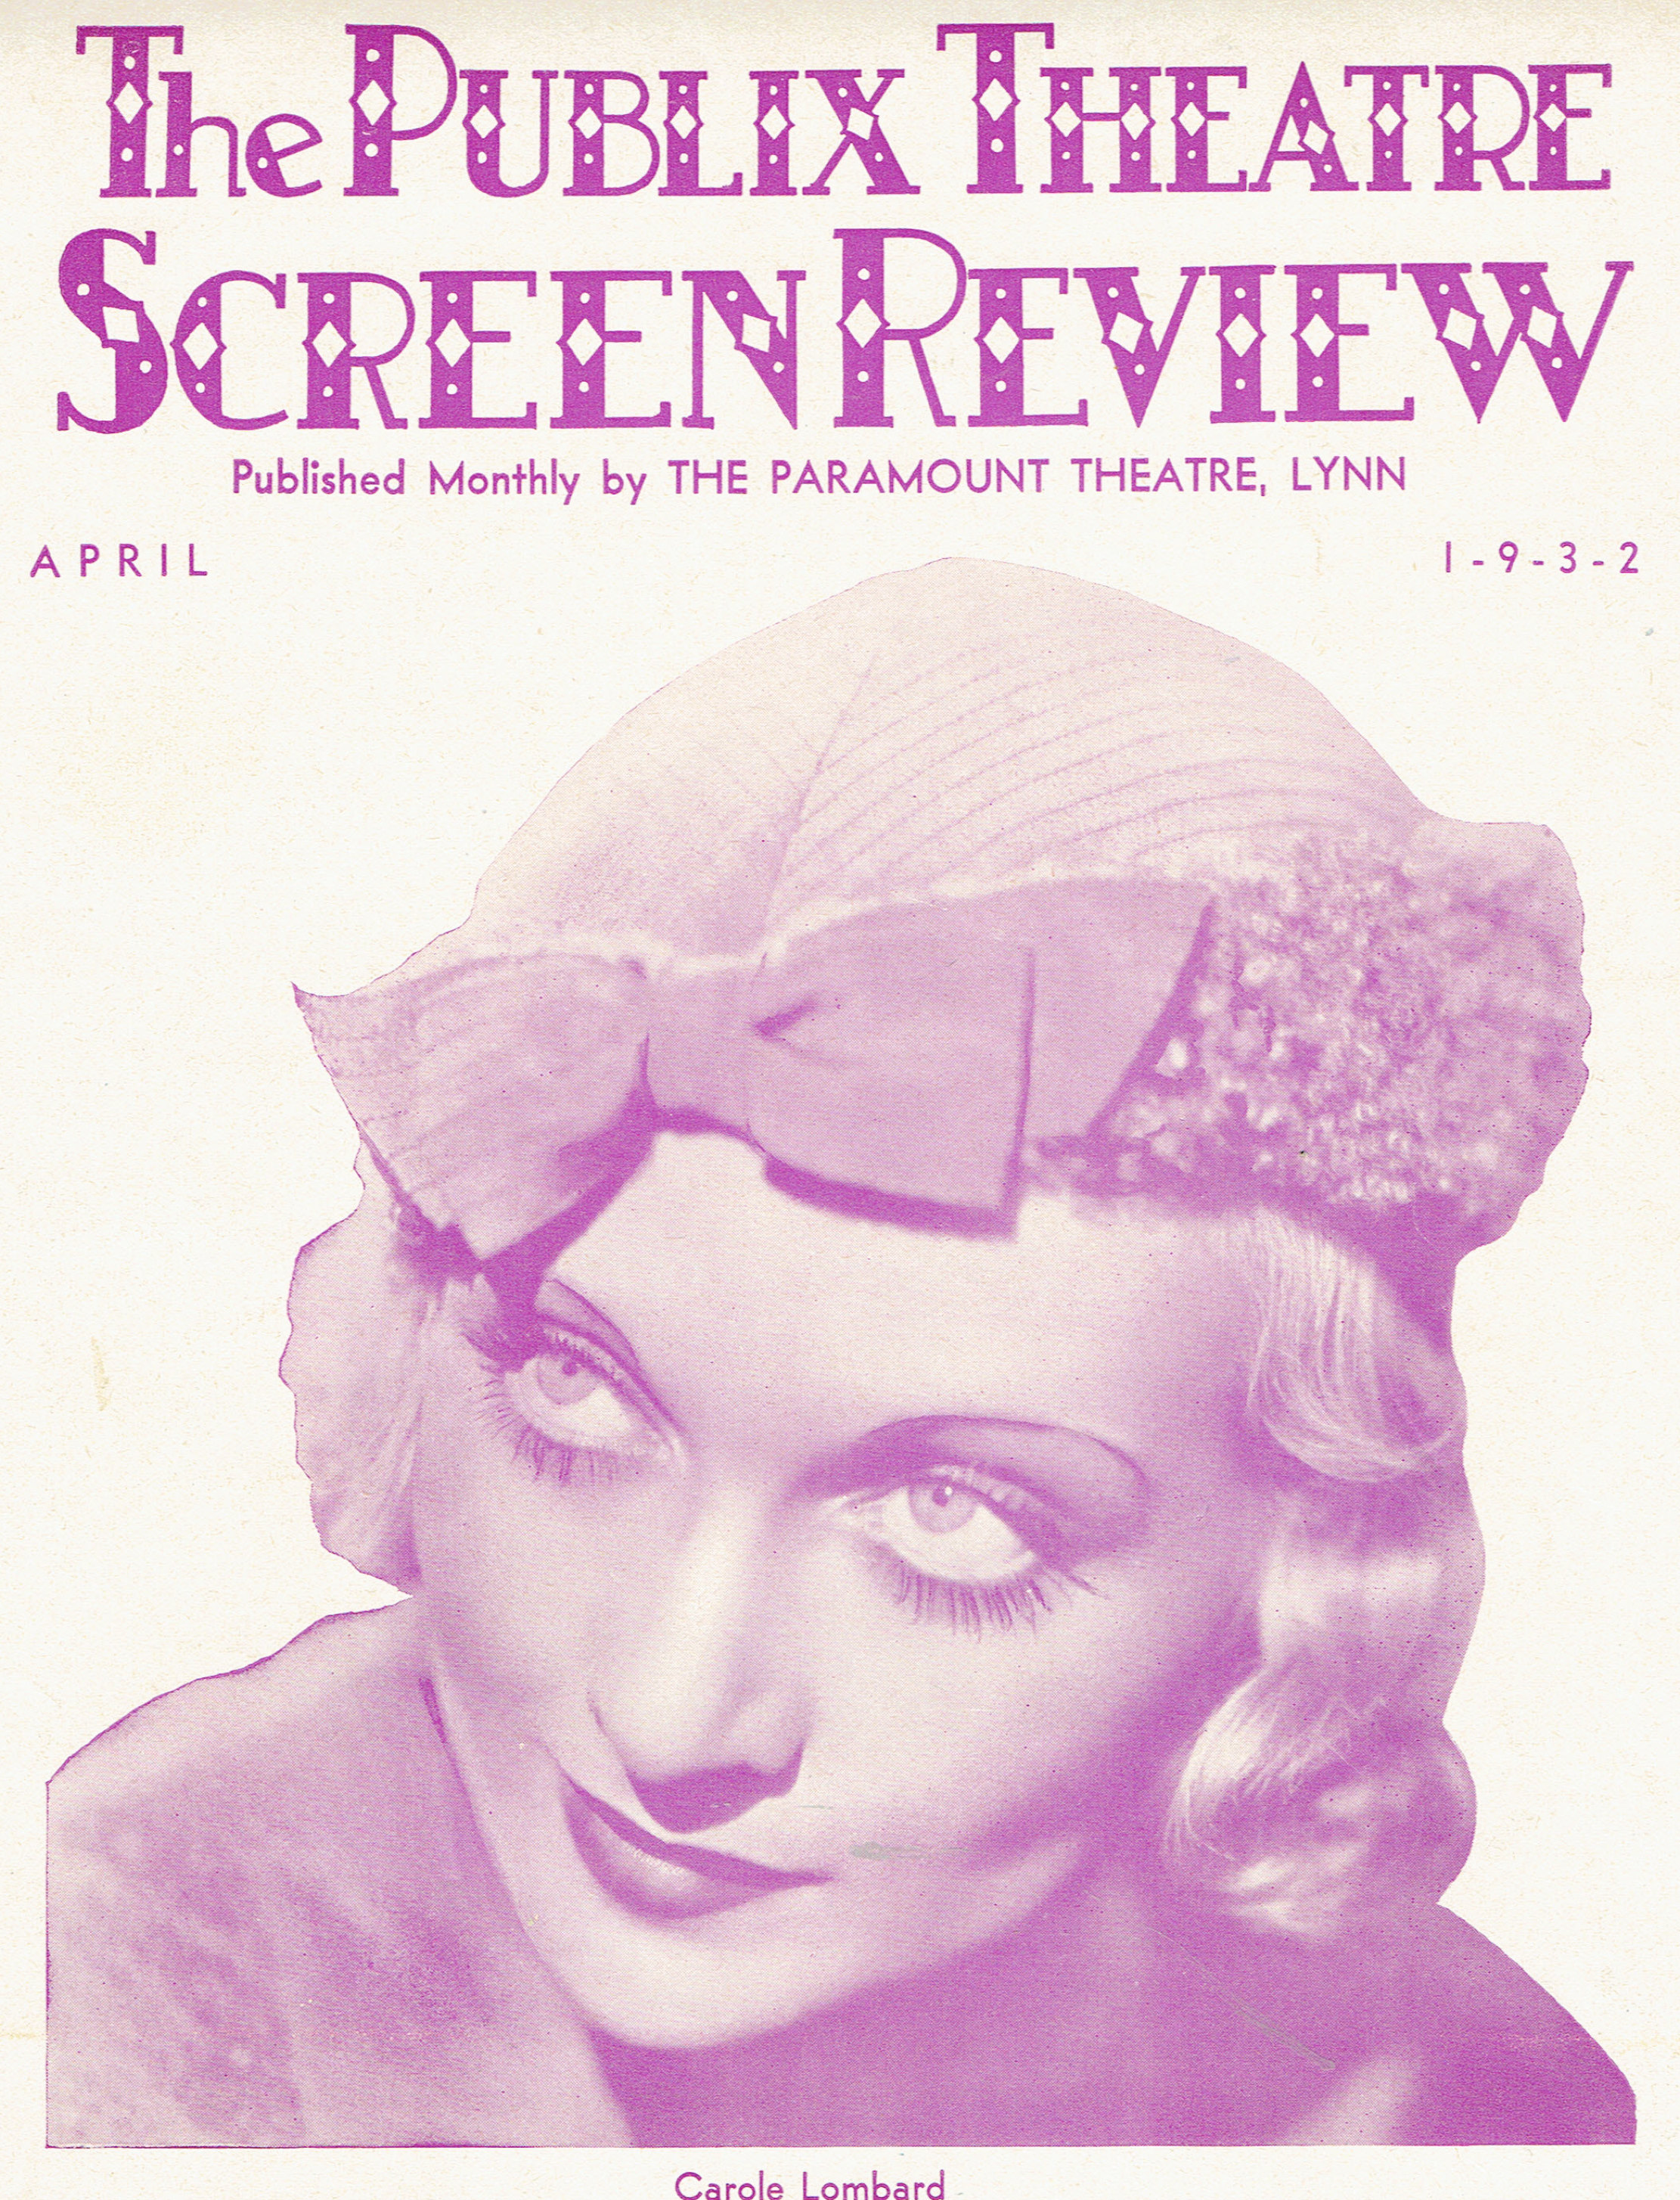 carole lombard publix theatre screen review april 1932ab